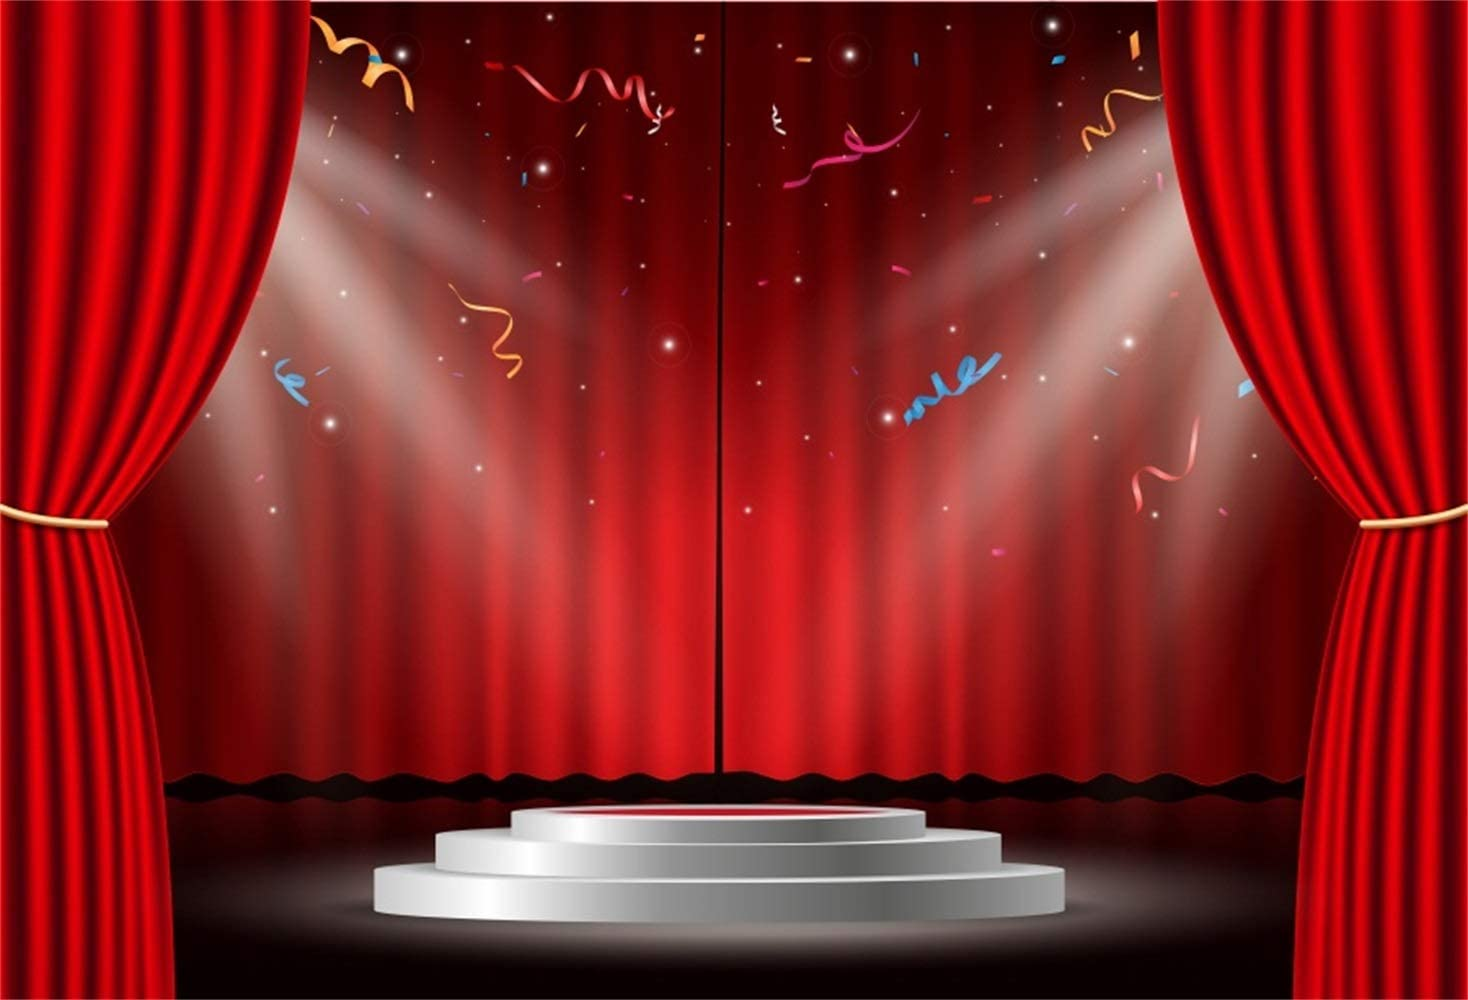 Show Time Red Stage Backdrop 8x6.5ft Polyester Red Curtain Bright Spotlights Now Showing Golden Lace Sign Photography Background Live Show Performance Shoot Event Banner Adult Child Portrait